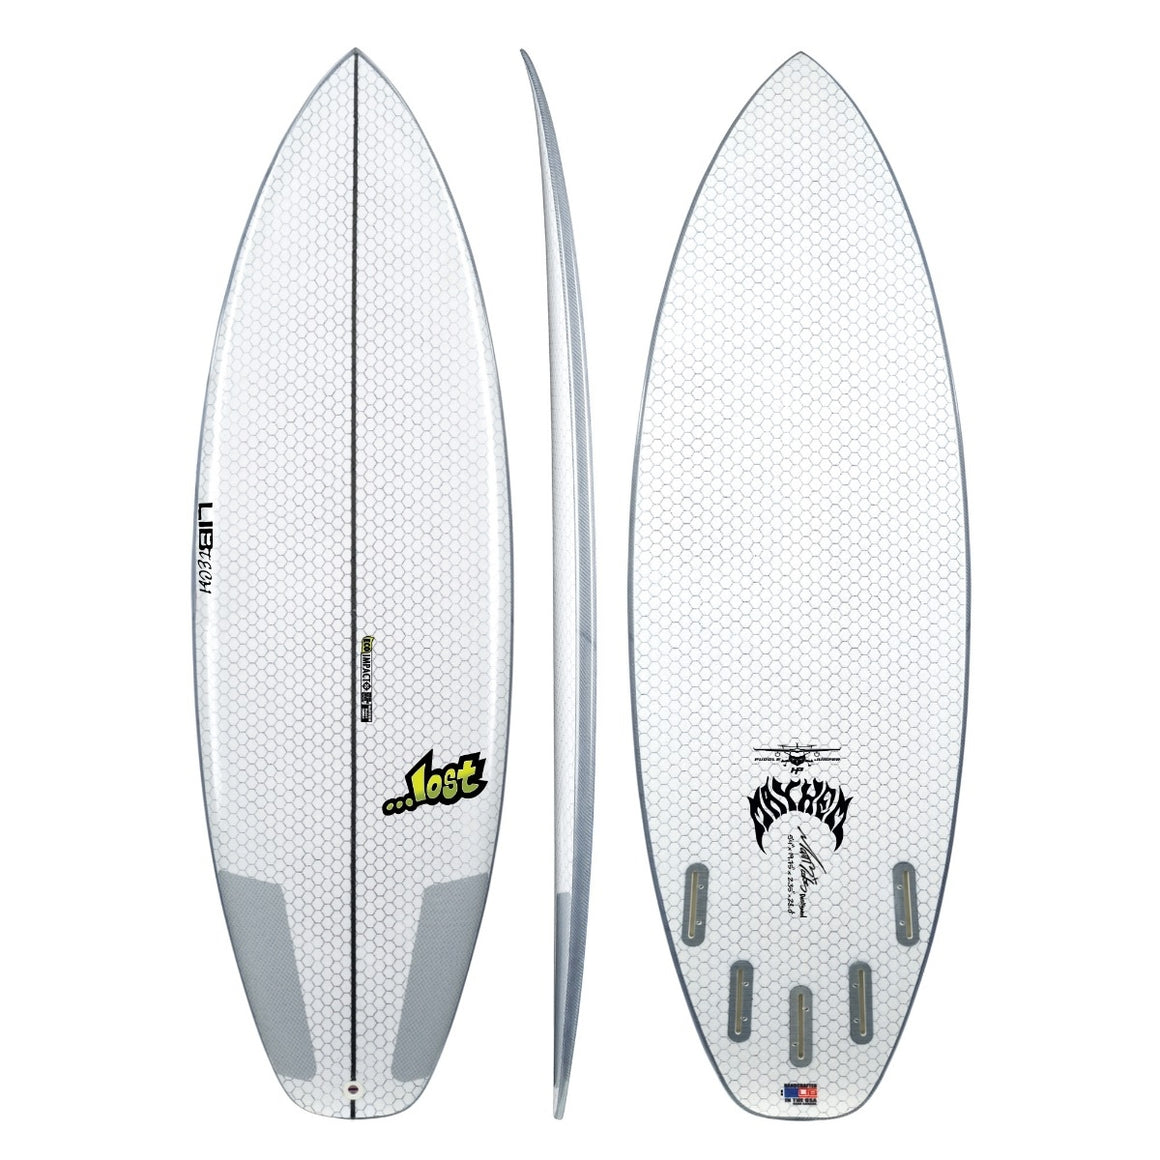 Libtech - Lost Puddle Jumper HP 6'0 (FCSII Compatible)